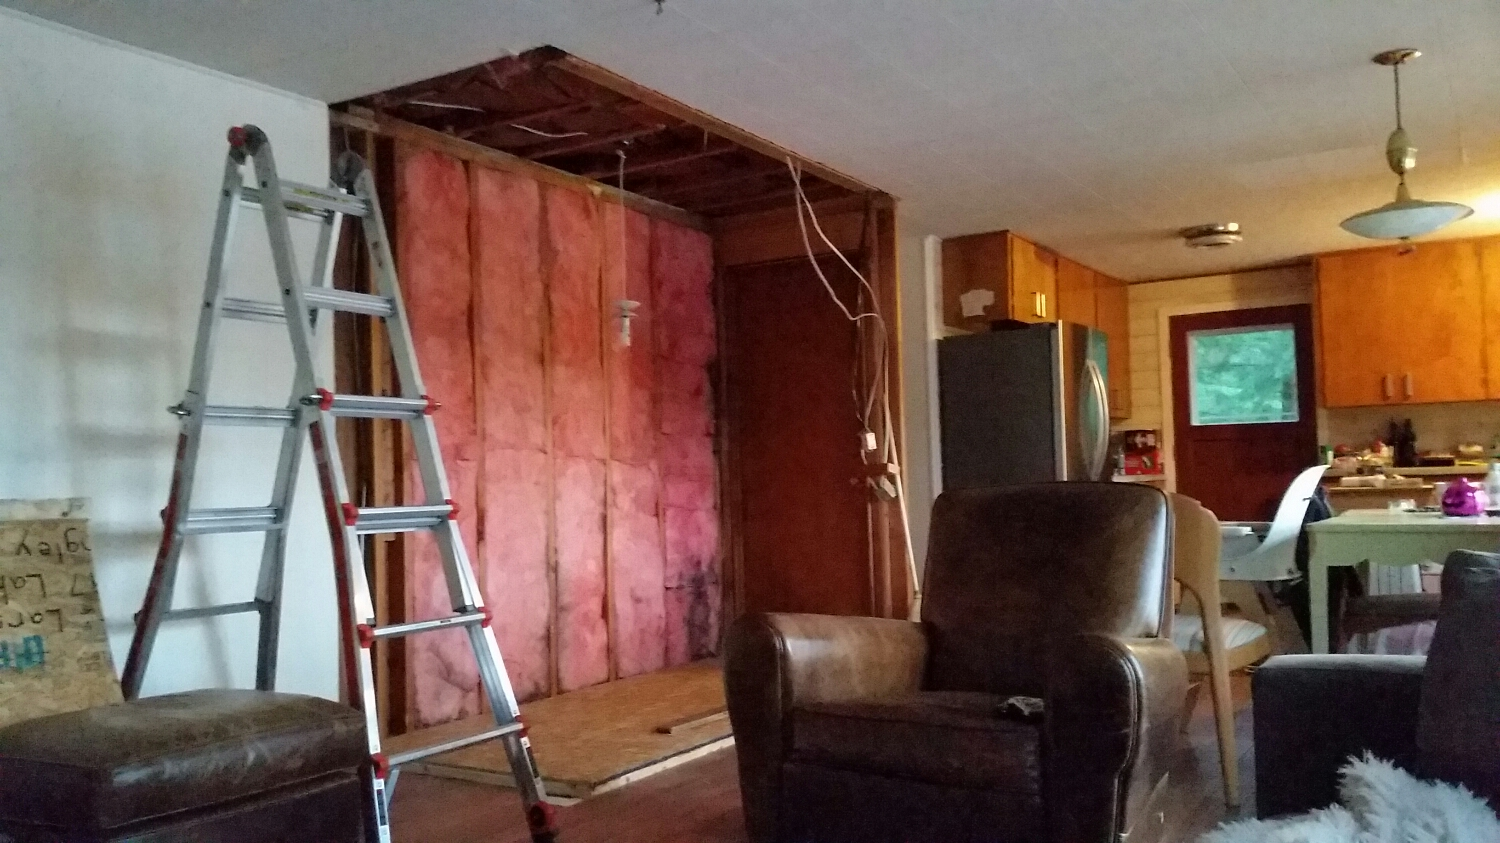 Walls removed